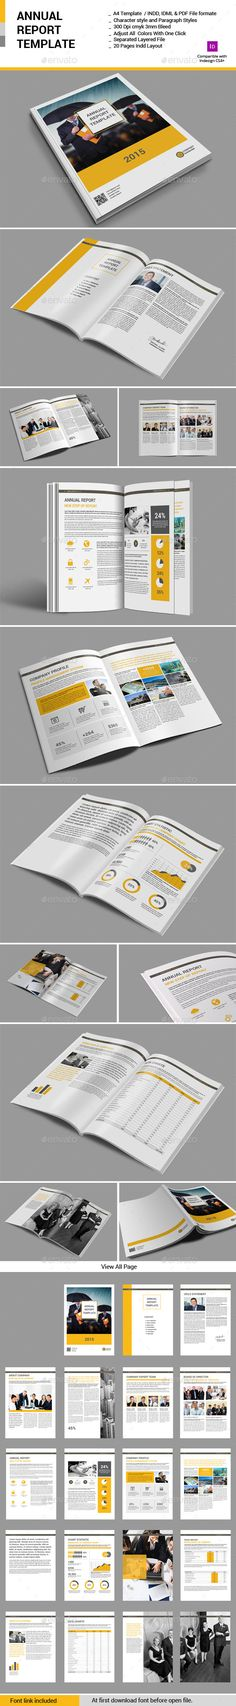 Annual Report Template 48 Pages - company report template